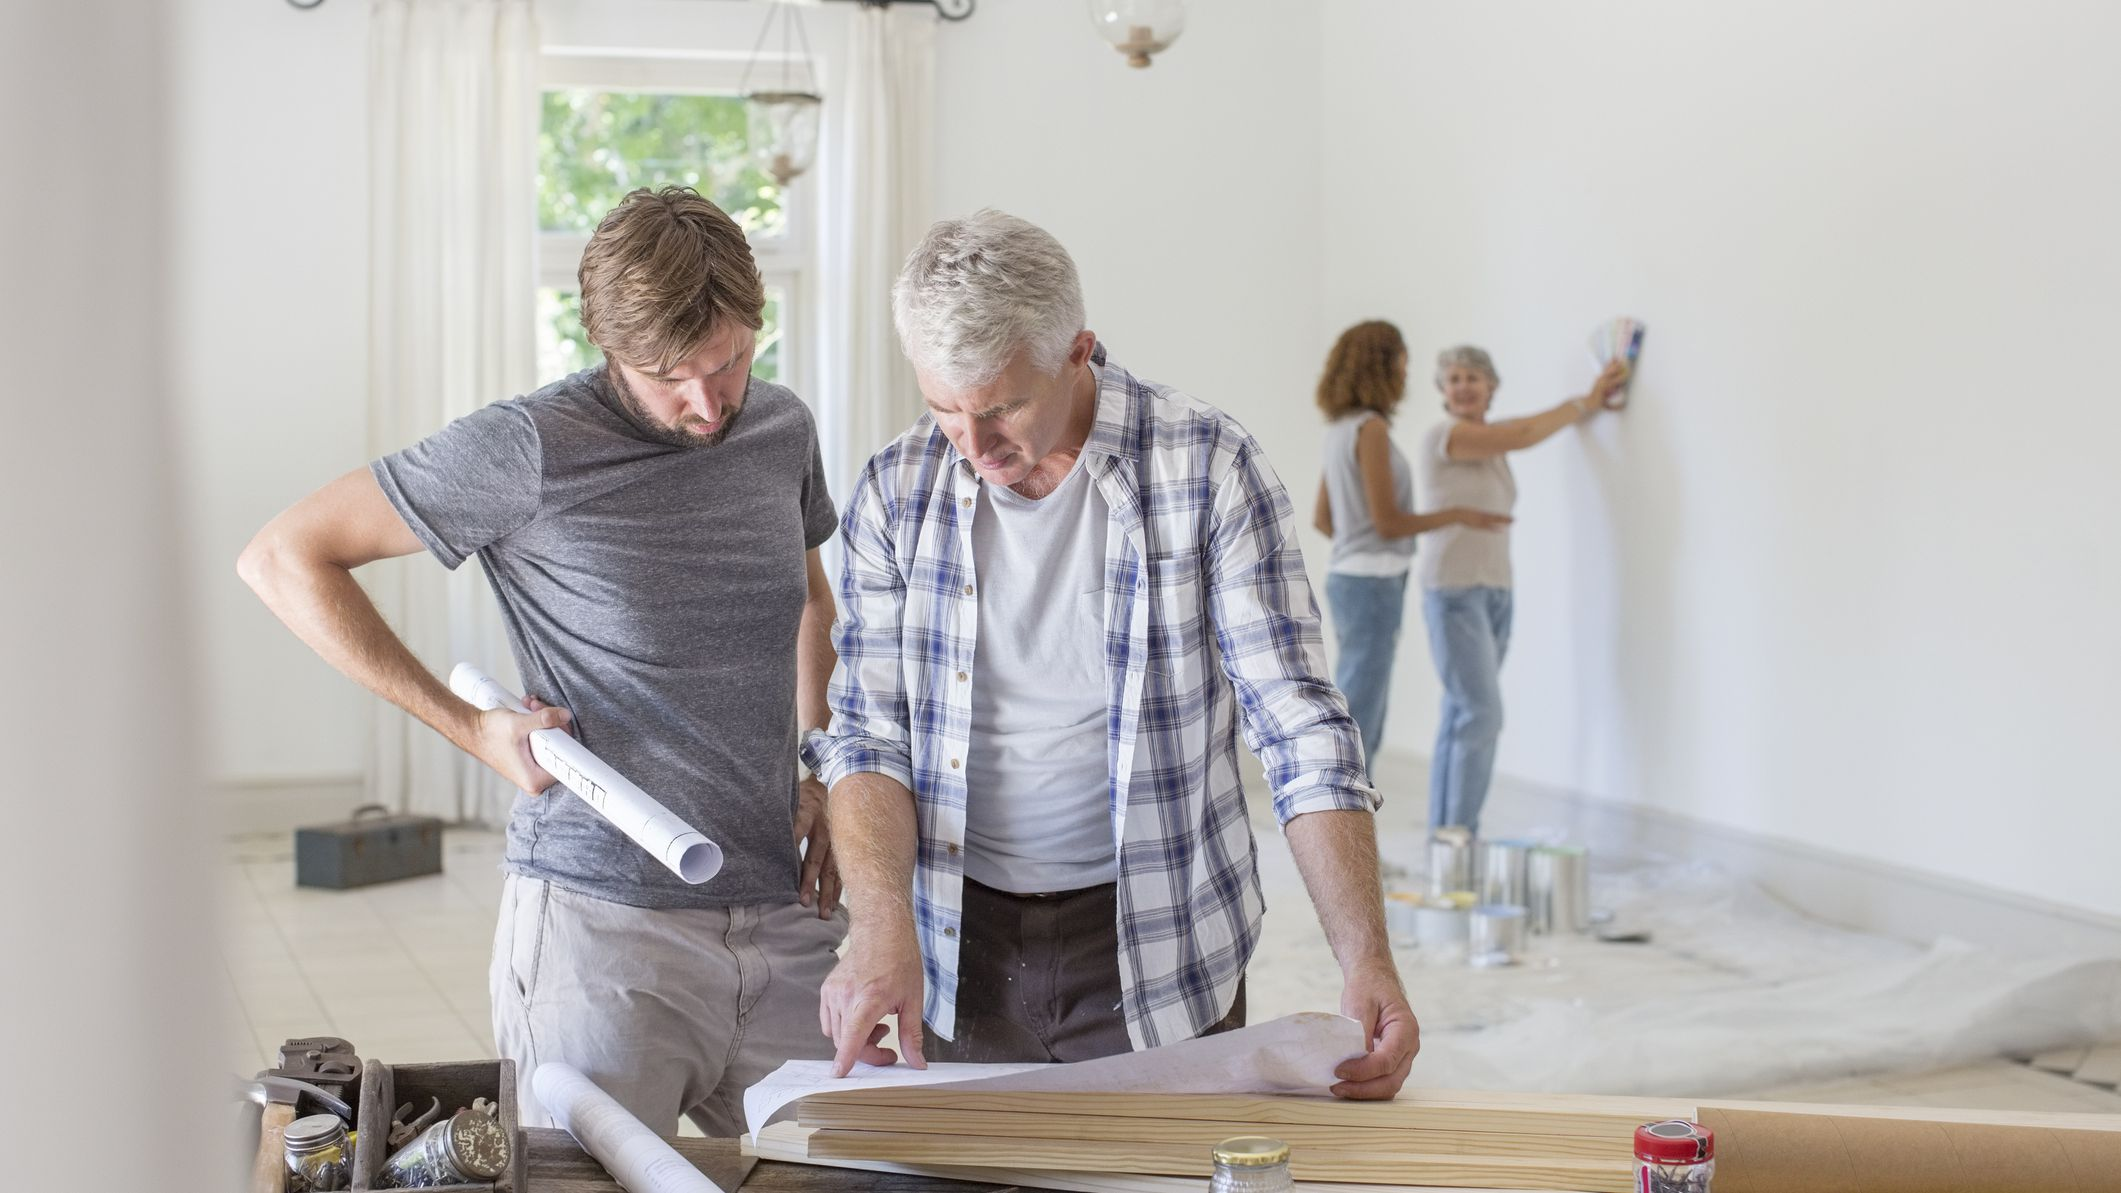 Do It Yourself With This Home Improvement Advice